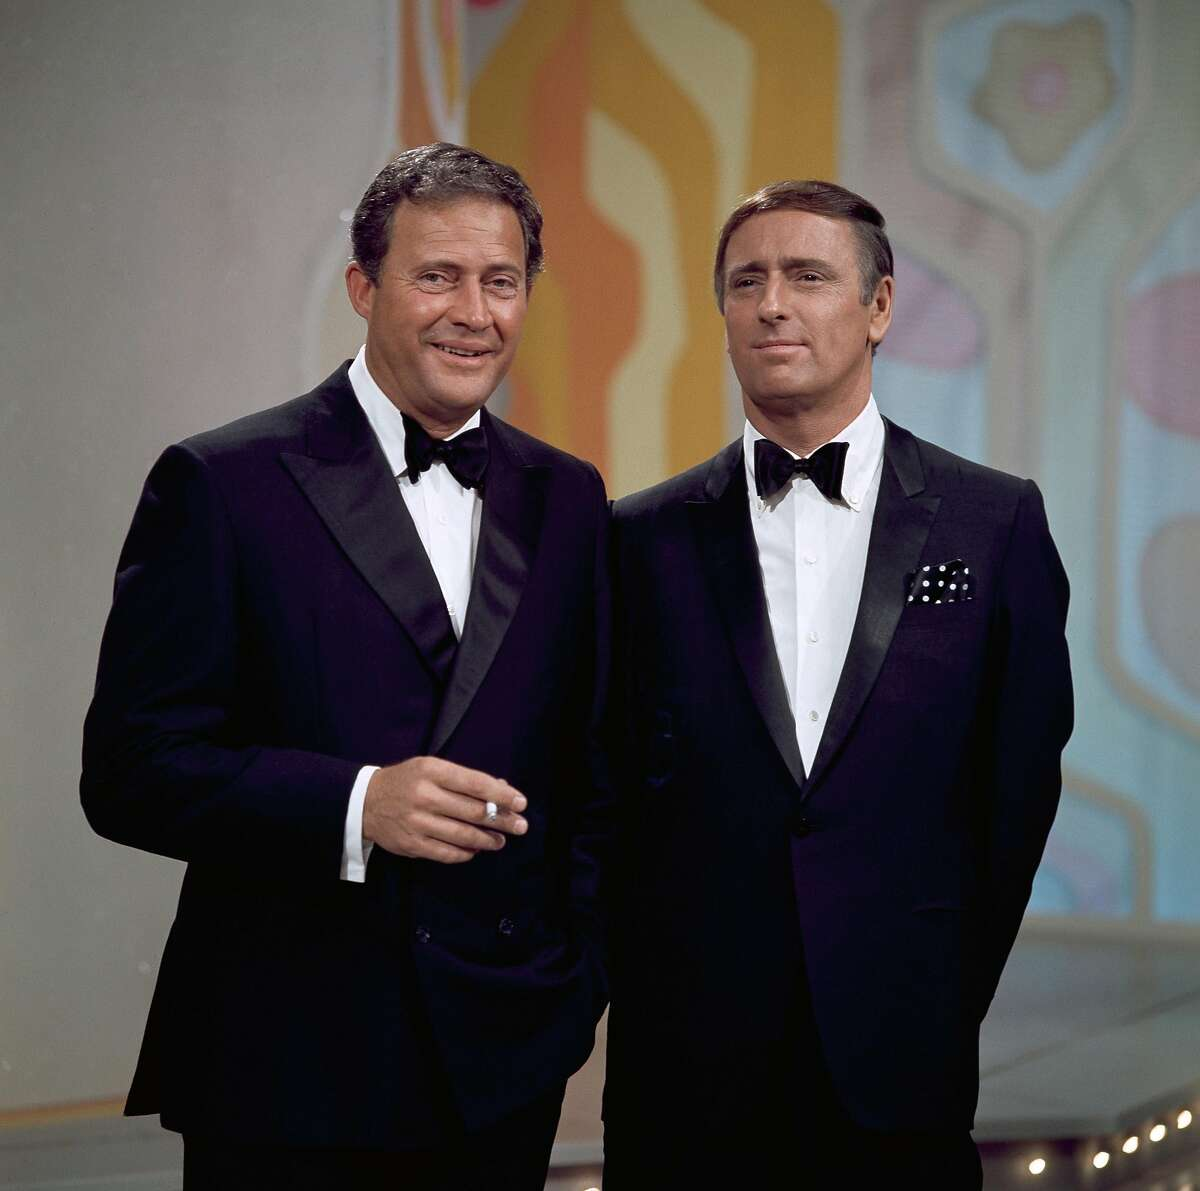 ROWAN & MARTIN'S LAUGH-IN -- Pictured: (l-r) Hosts Dan Rowan and Dick Martin (Photo by NBC/NBCU Photo Bank via Getty Images)